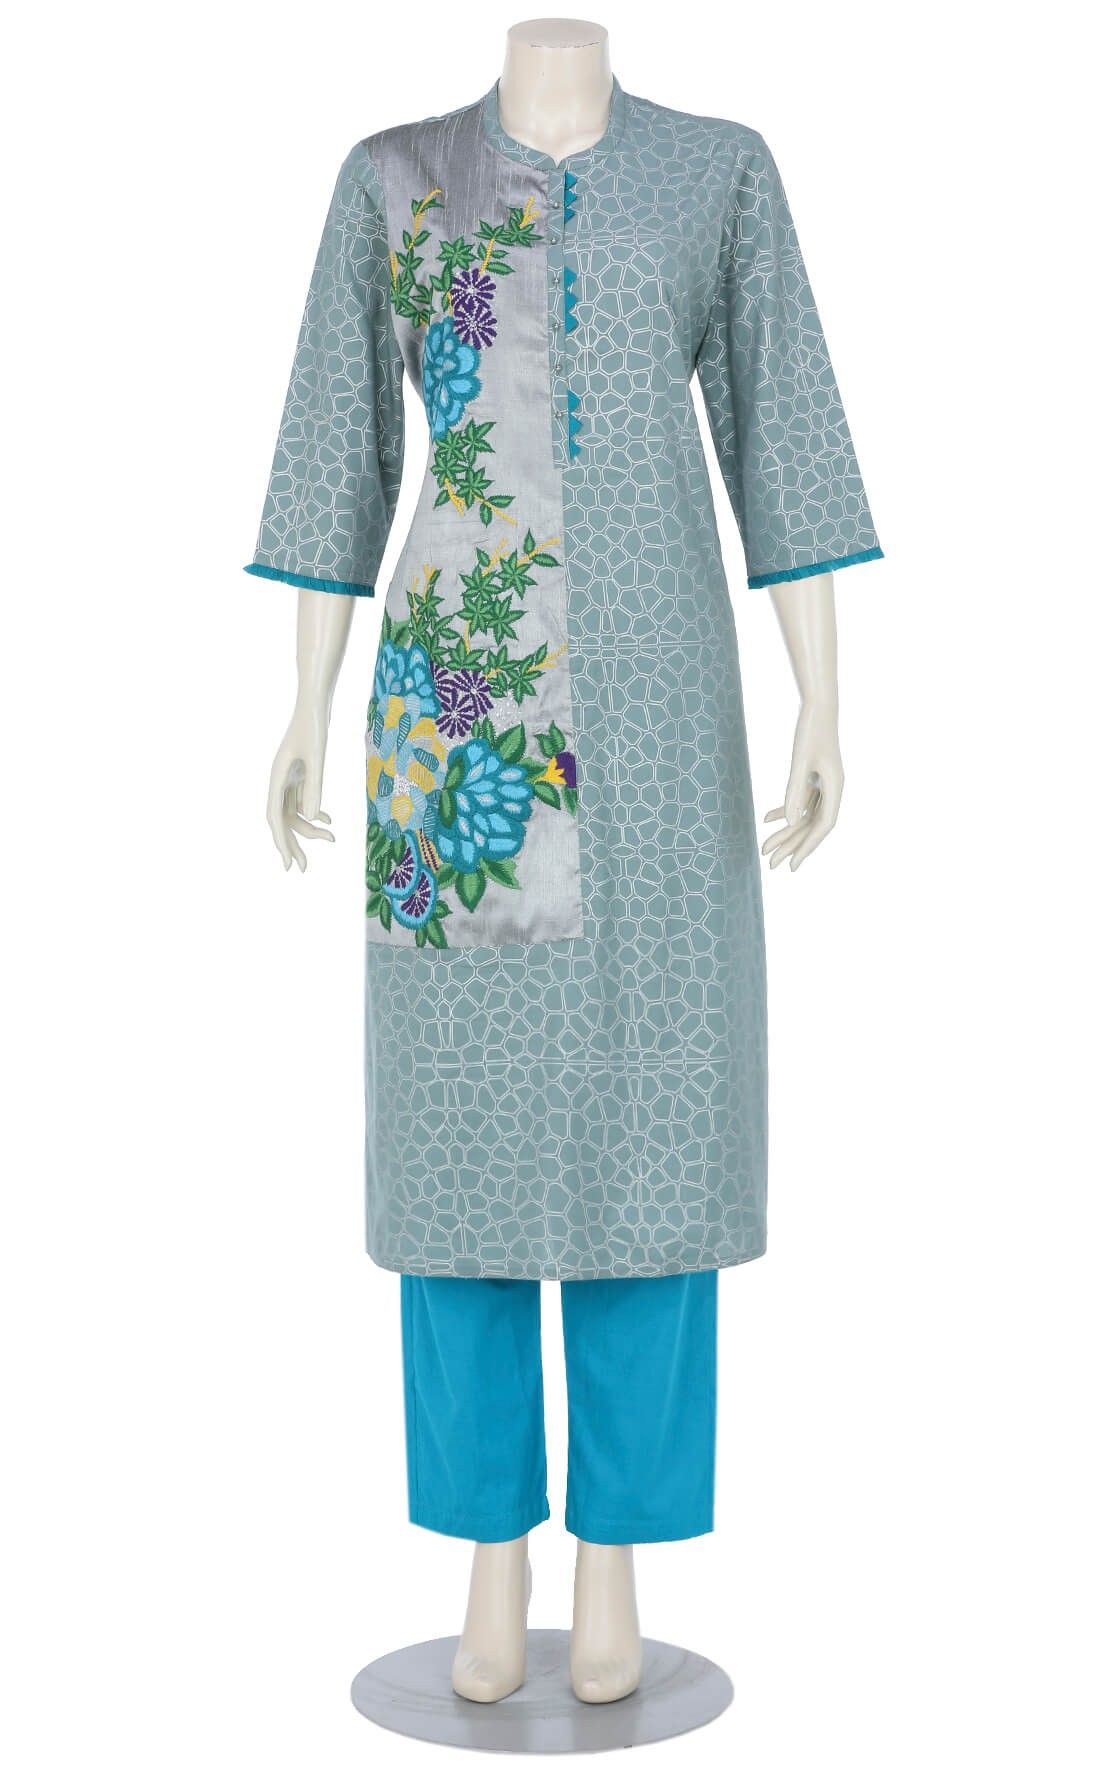 b6cb185752 Grey Printed and Embroidered Viscose-Cotton Shalwar Kameez Set ...